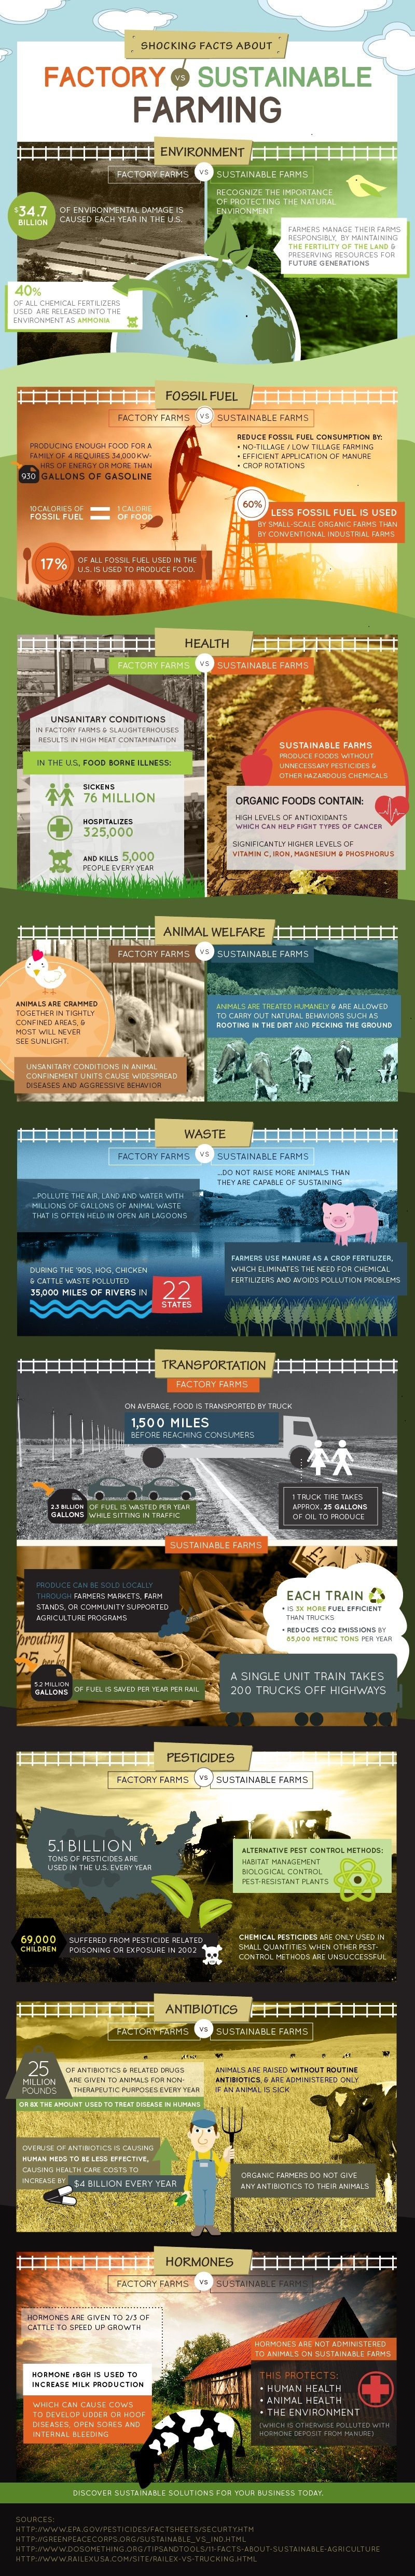 shocking facts about factory farming vs sustainable farming shocking facts about factory farming vs sustainable farming